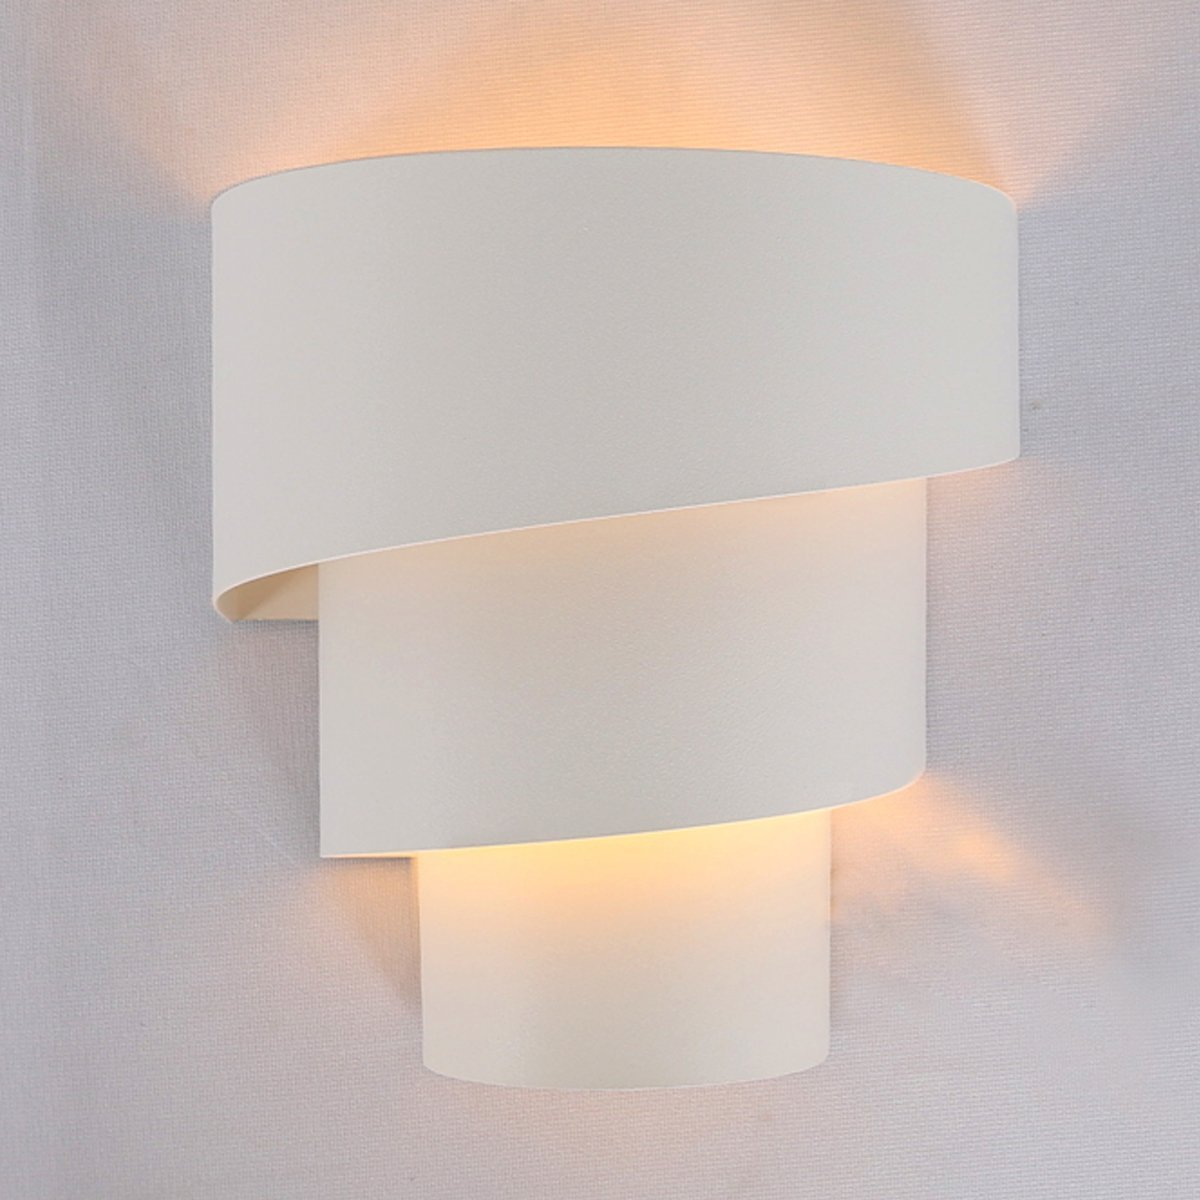 hallway sconce lighting. Lightess LED Wall Light Sconce Night For Hallway, Staircase, Garden, Wall, Bedroom,Living Room, Warm White: Amazon.co.uk: Lighting Hallway